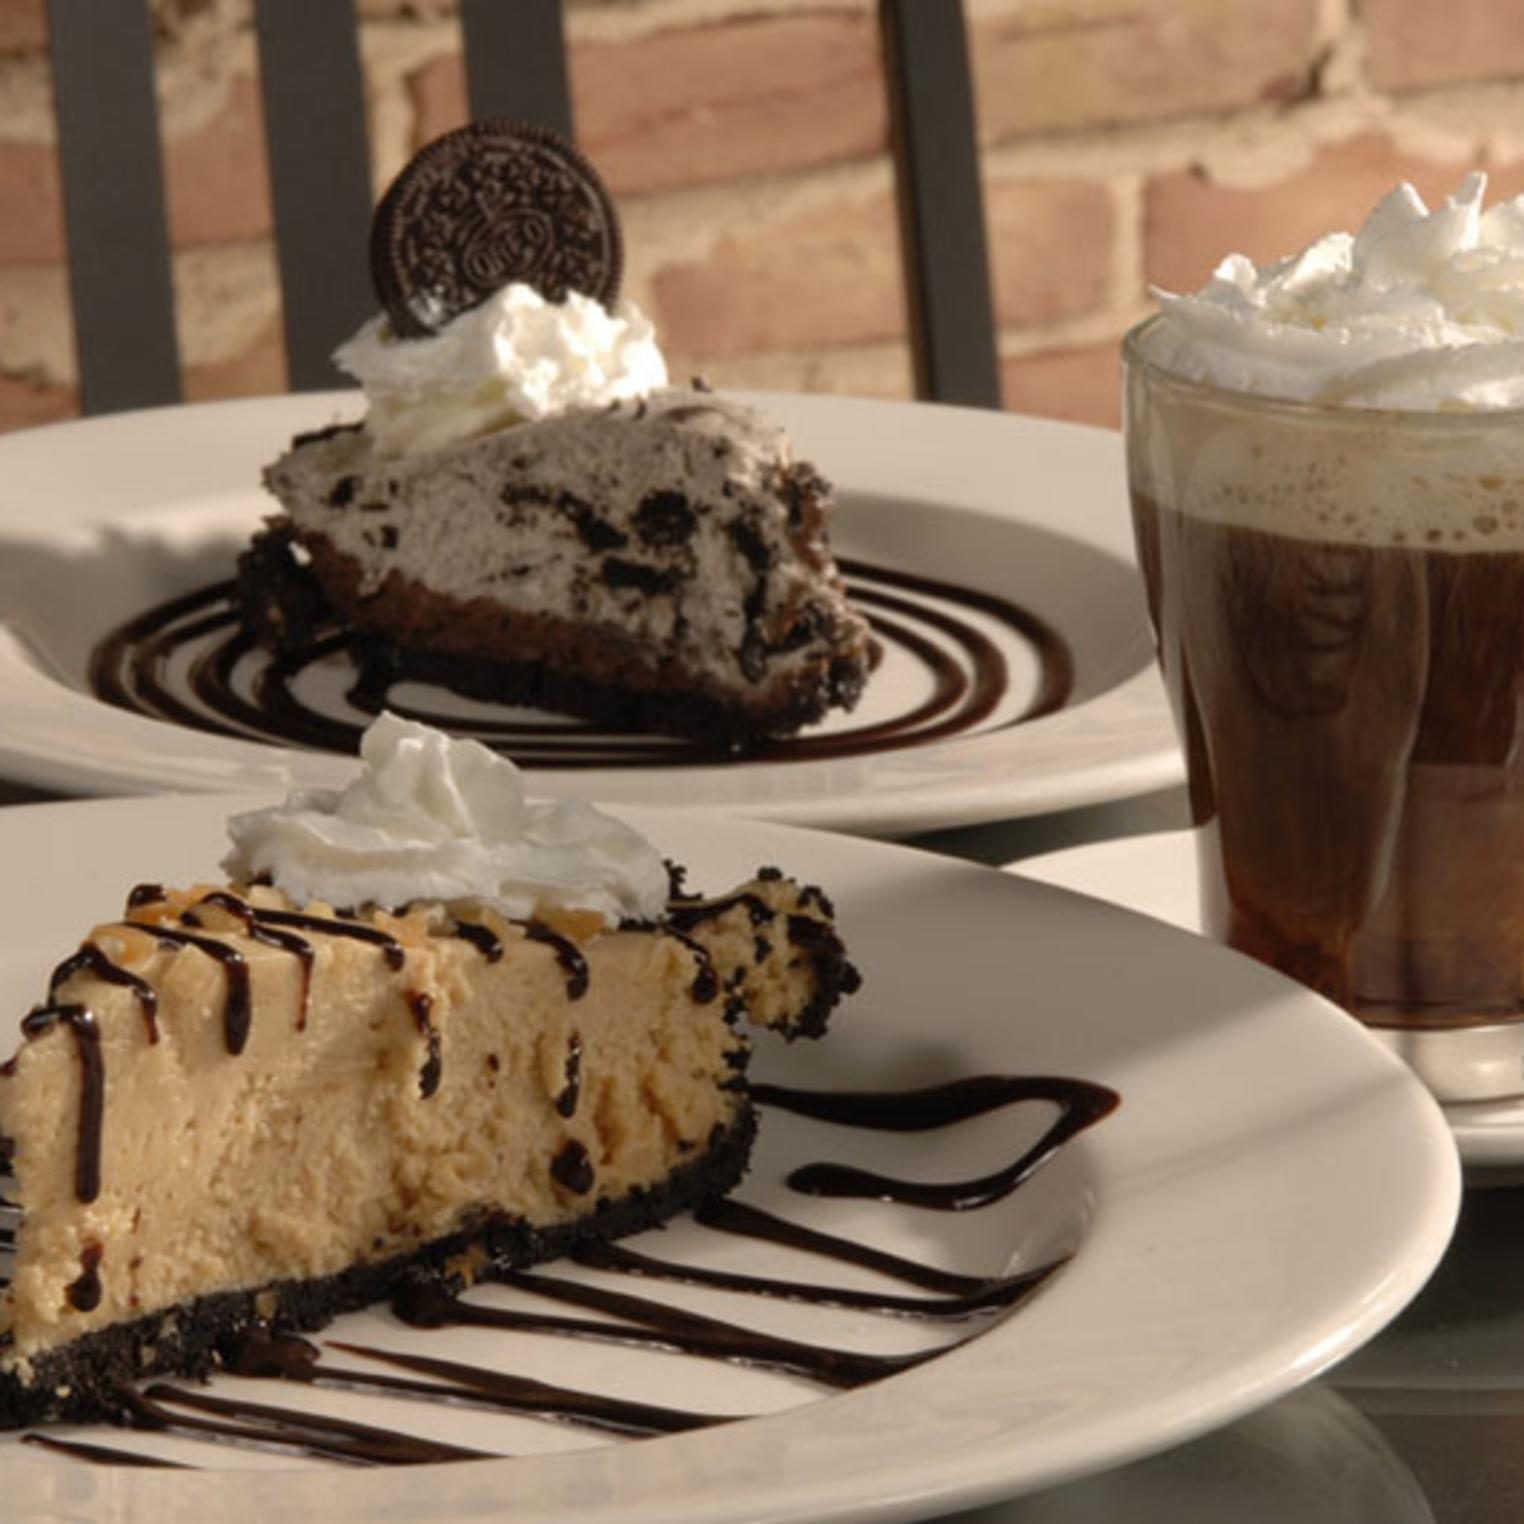 Desserts at Pizza Grille